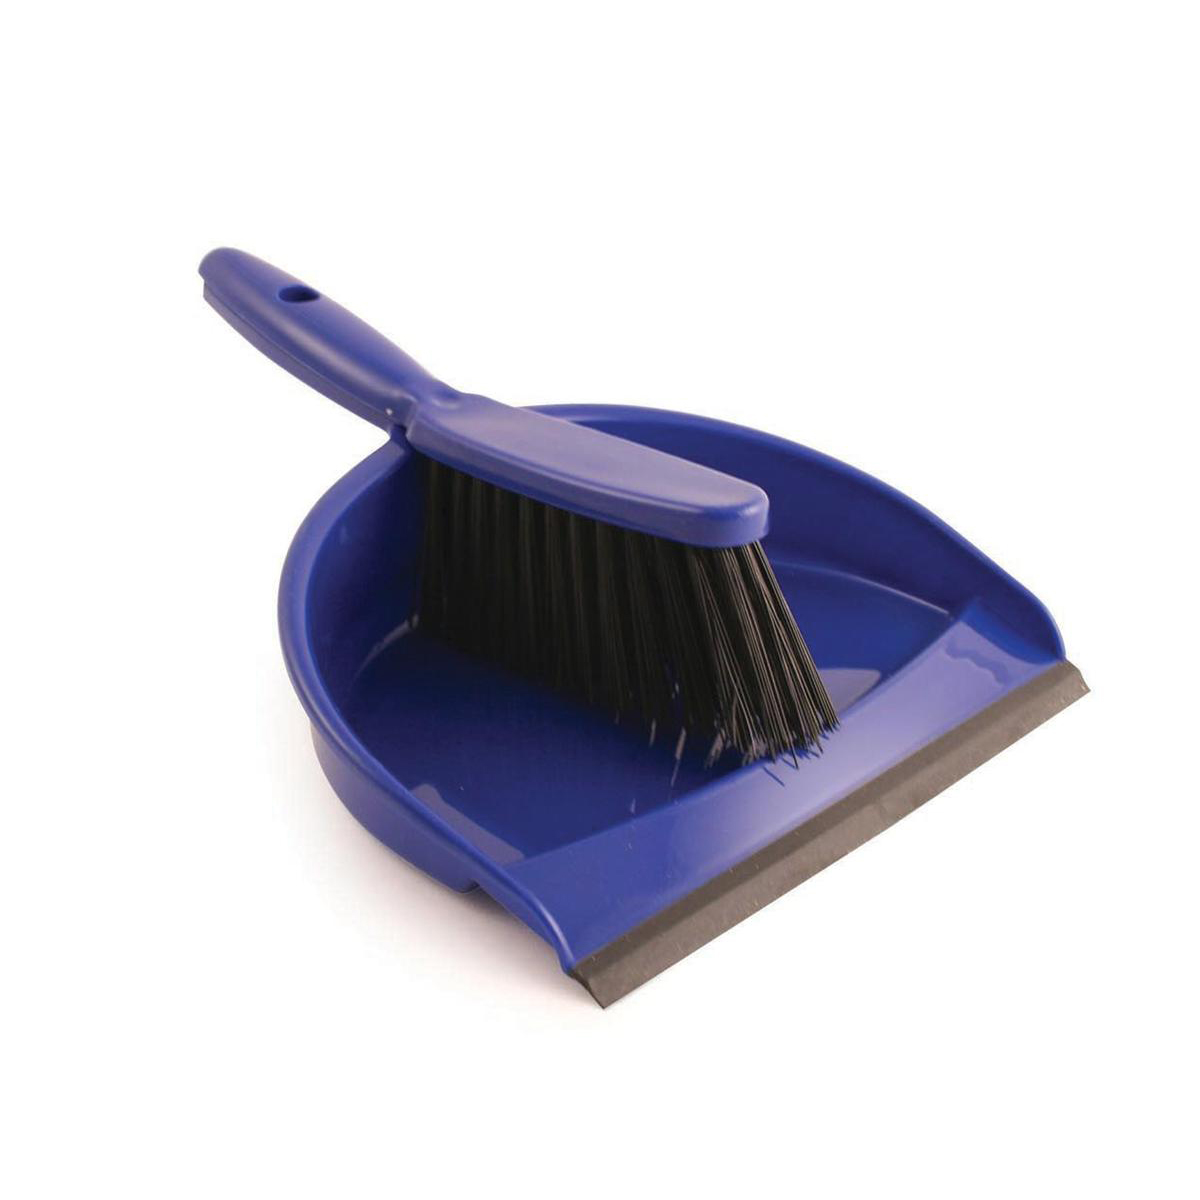 Dust brushes or pans Dustpan and Brush Set Soft Bristles Blue SET